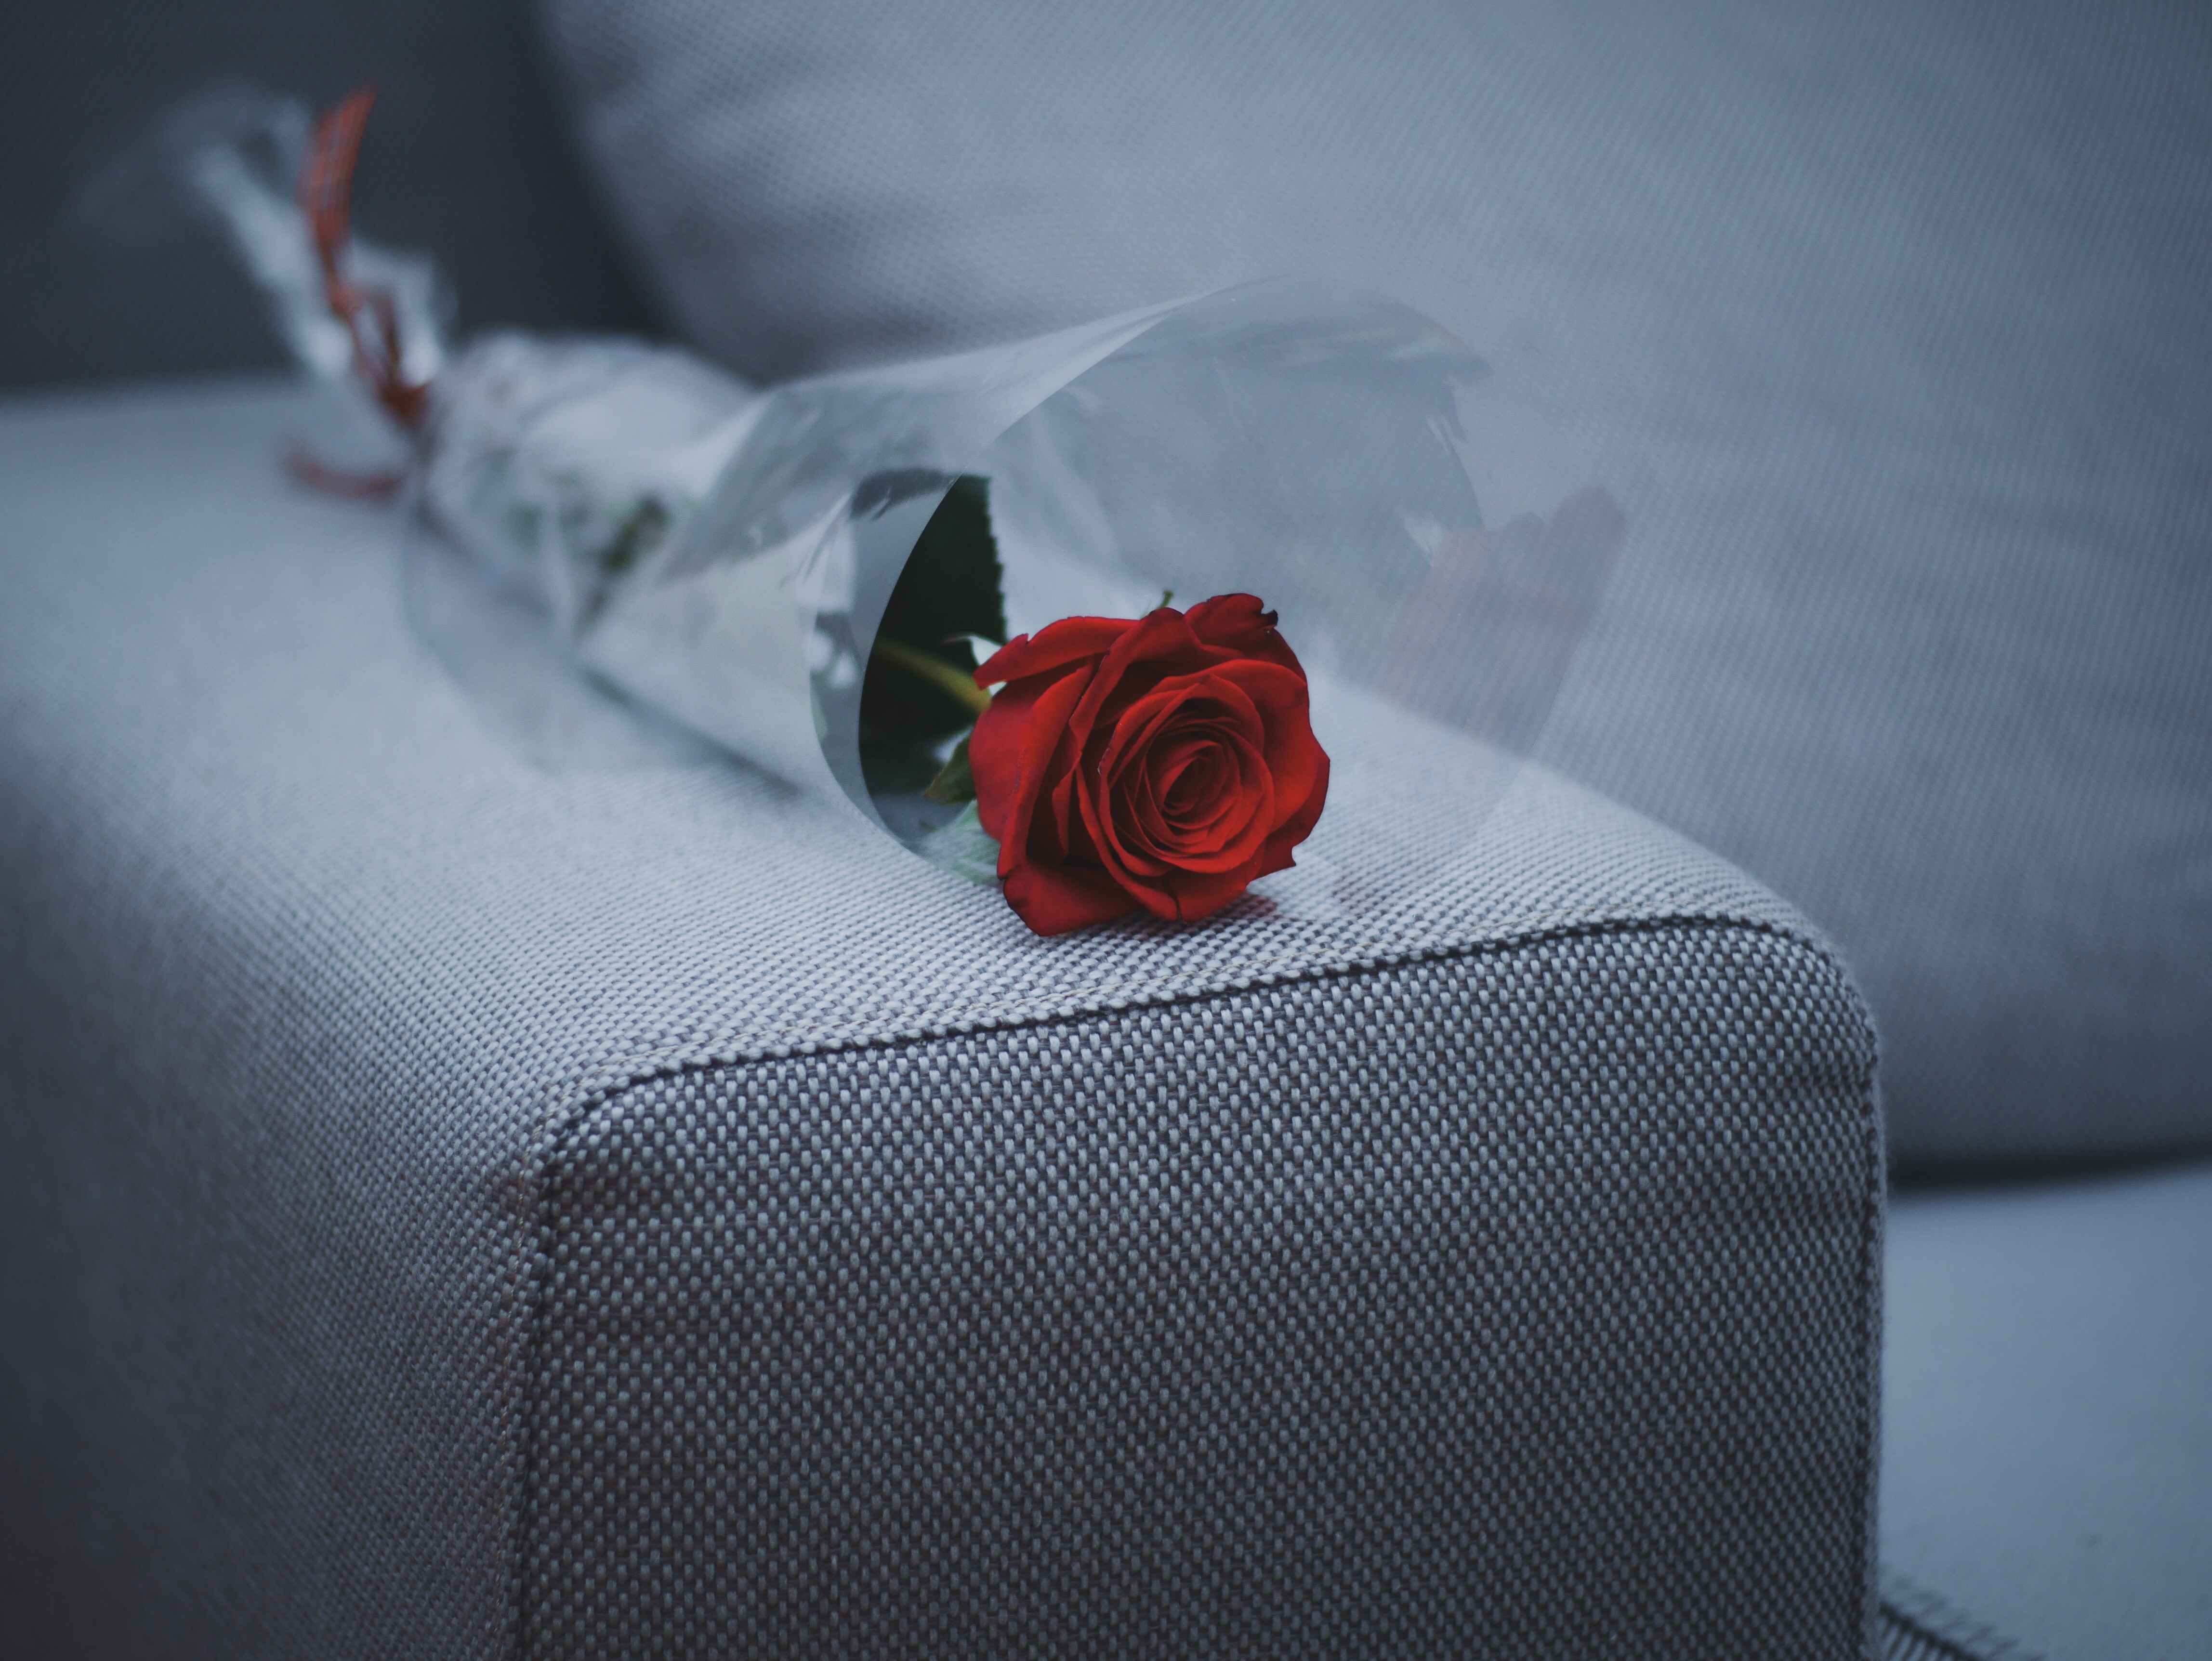 red rose flower on gray fabric sofa